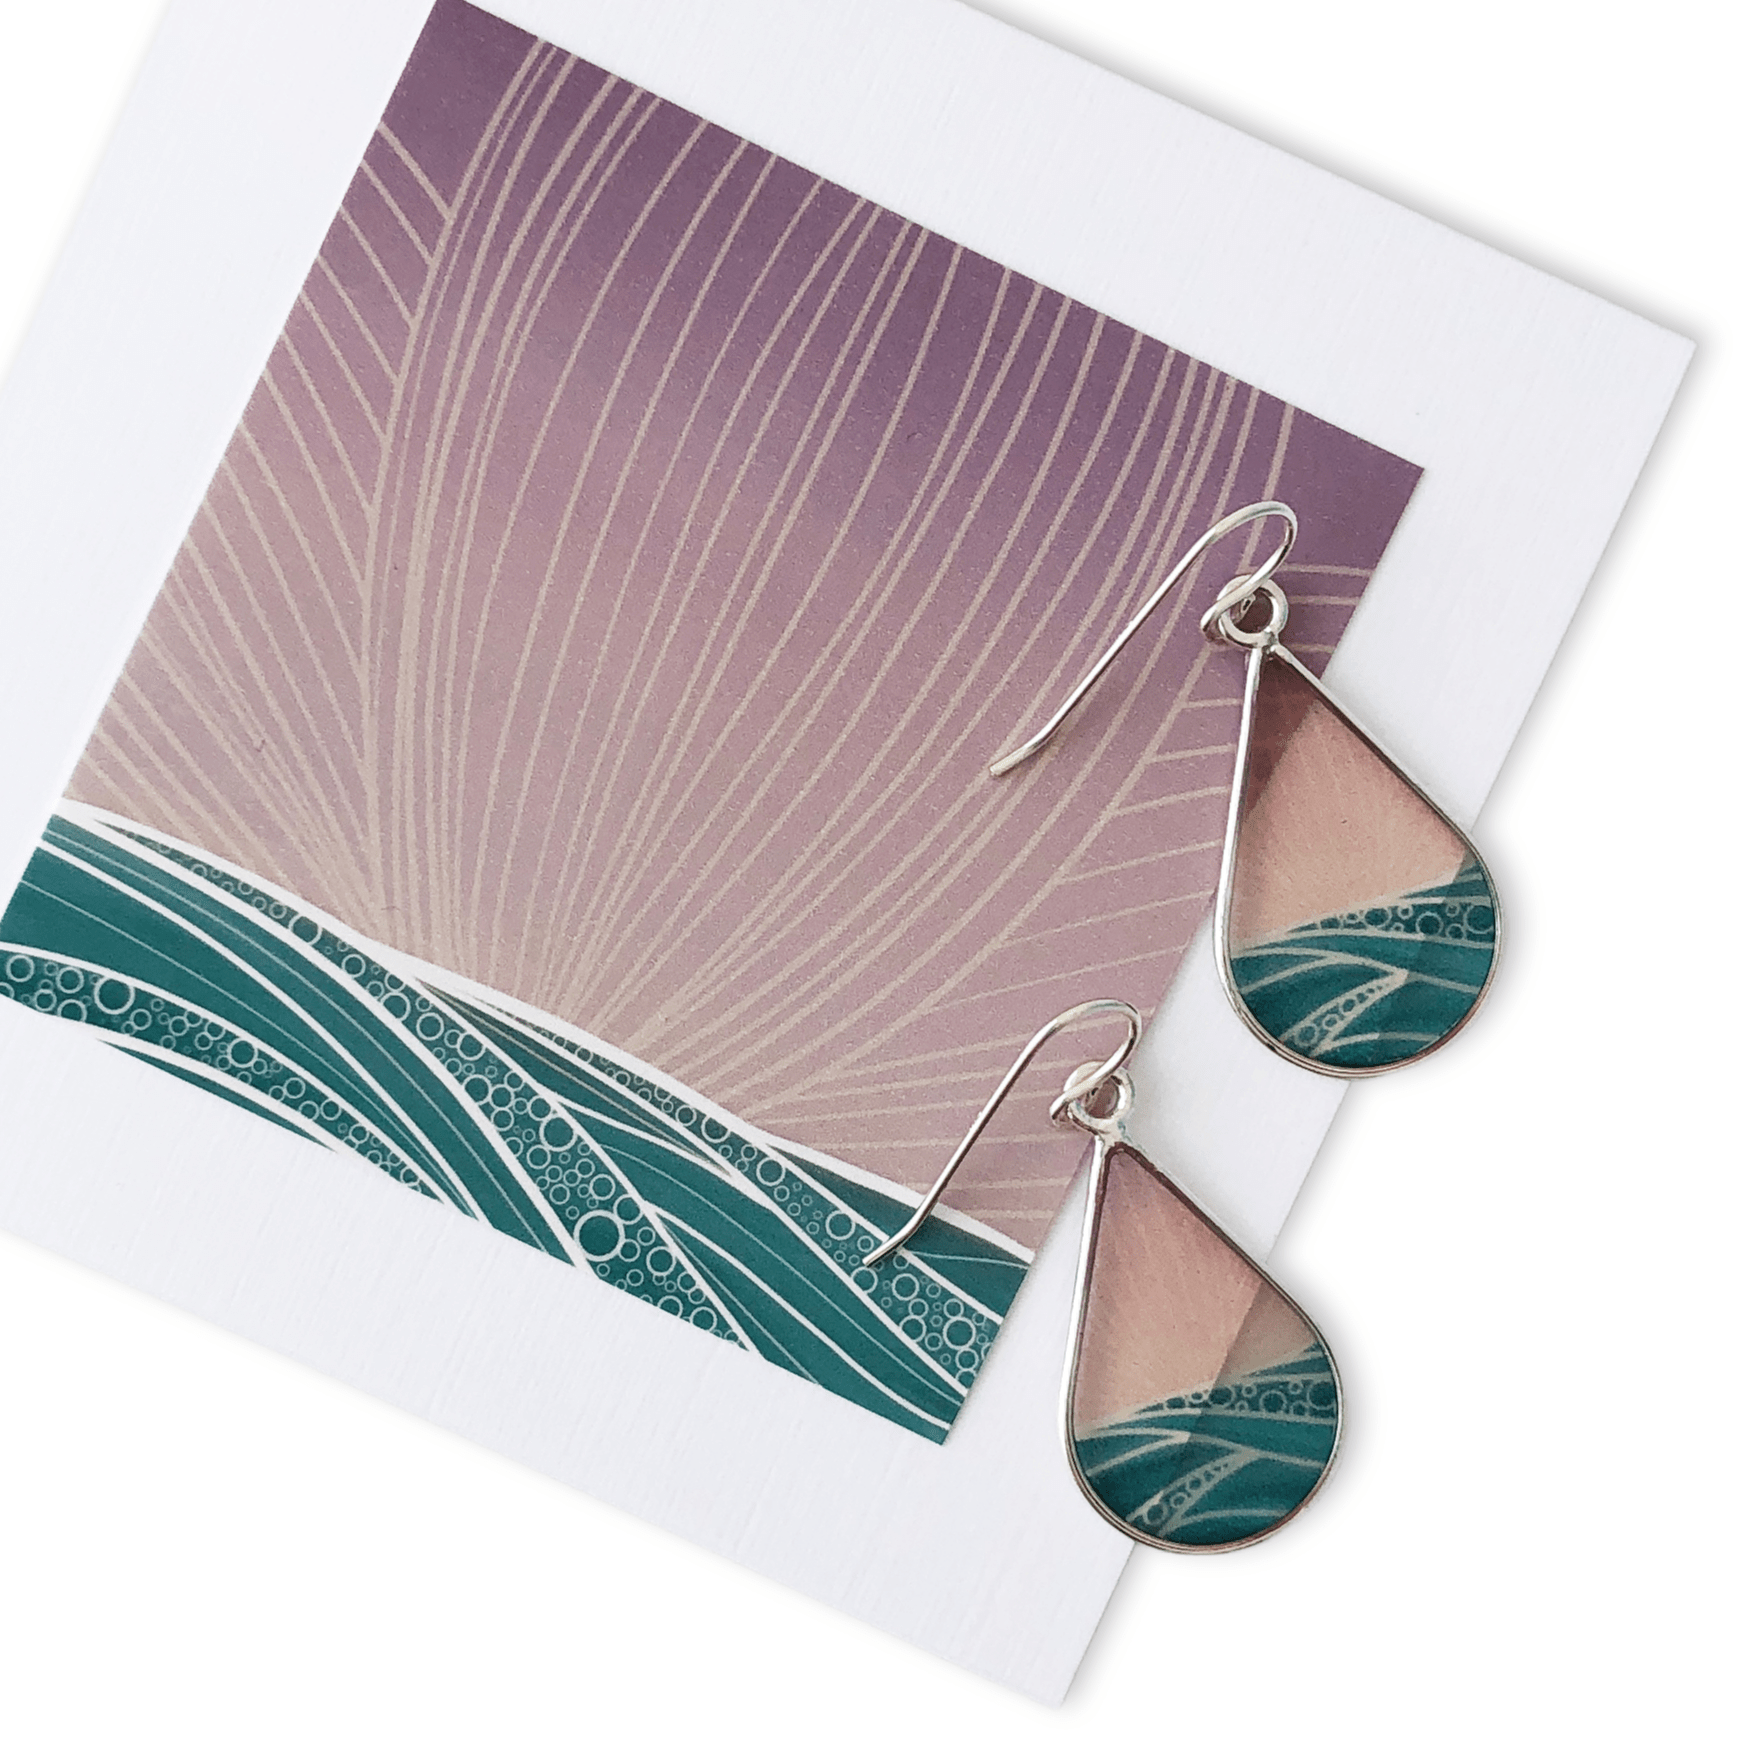 Bethany Strickland Art Earrings